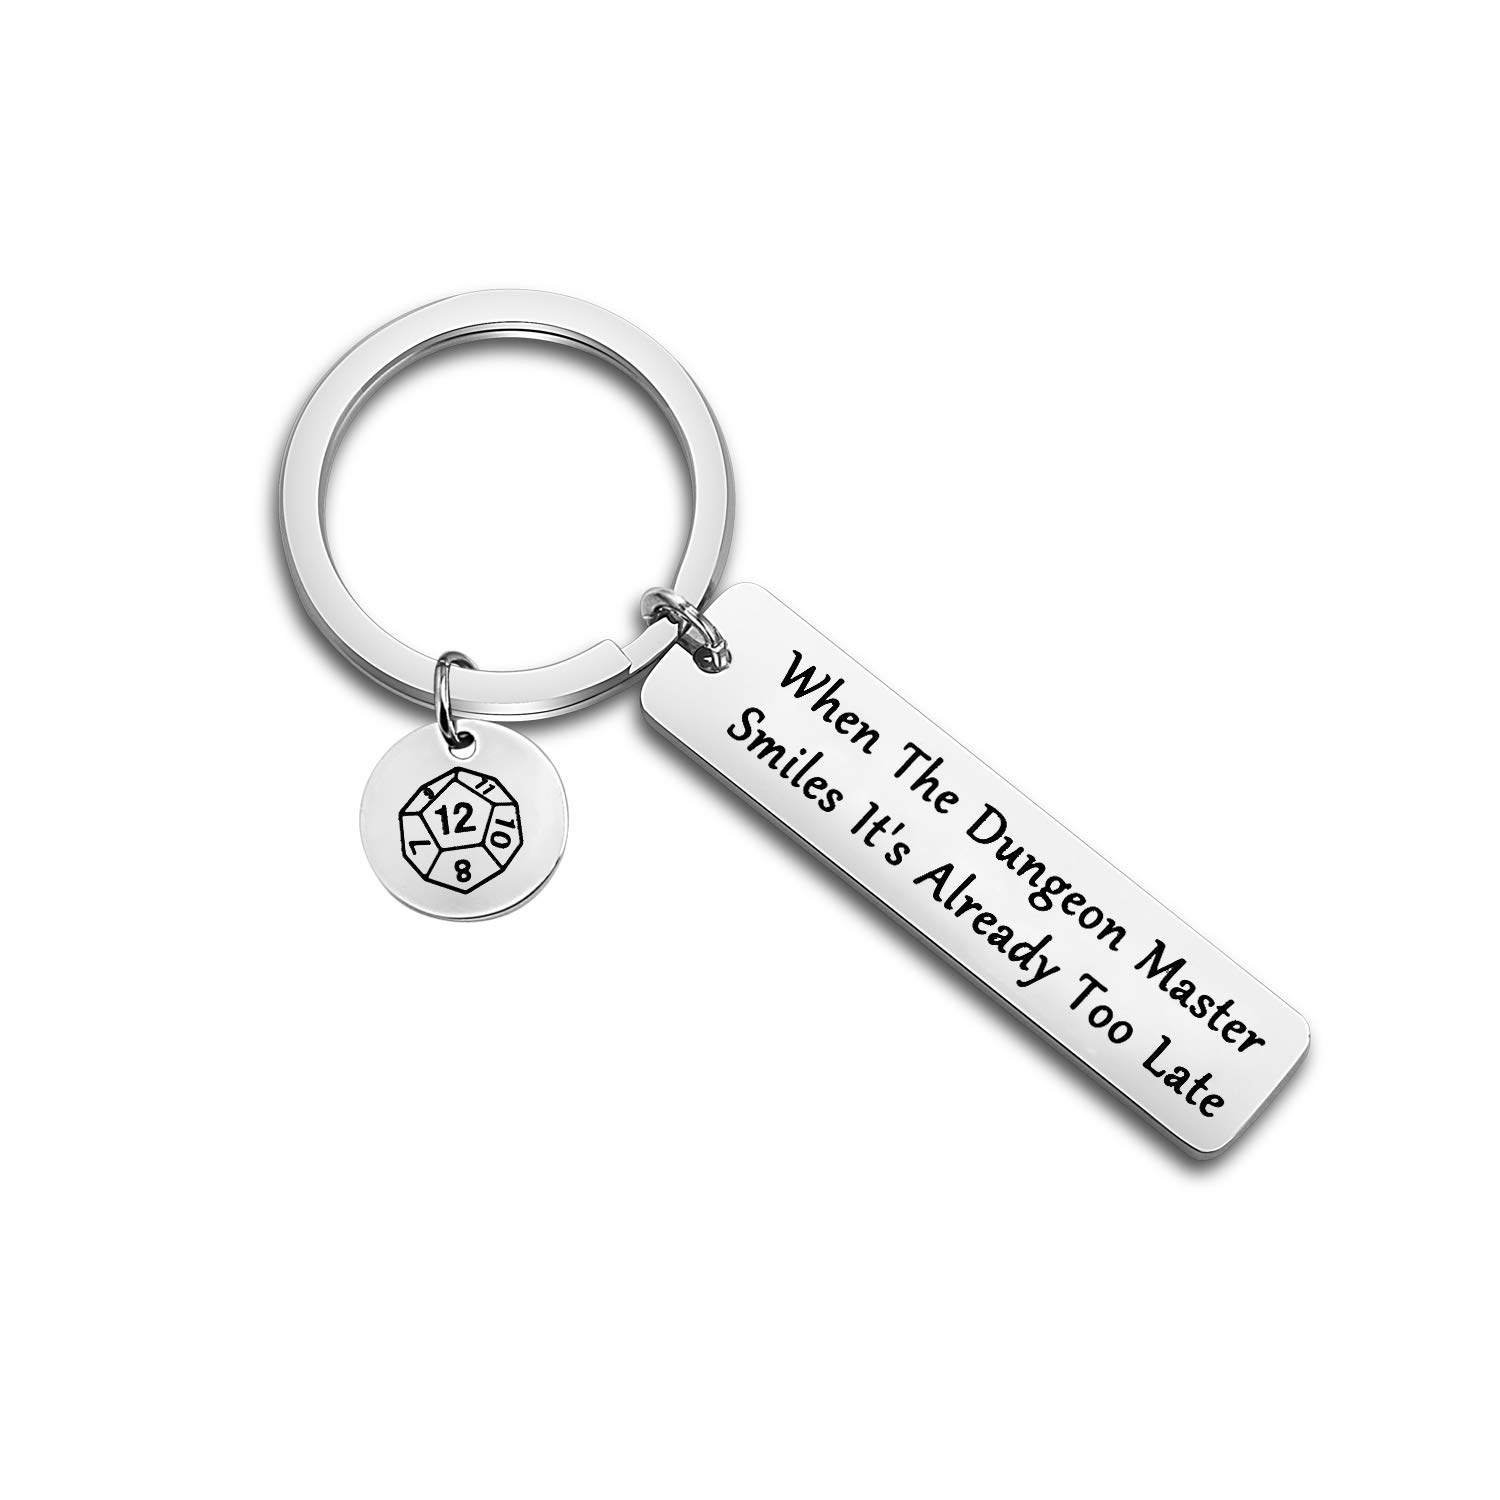 ENSIANTH When The Dungeon Master Smiles Its Already Too Late Keychain Dungeon Master Gift Funny Dungeons and Dragons Gifts